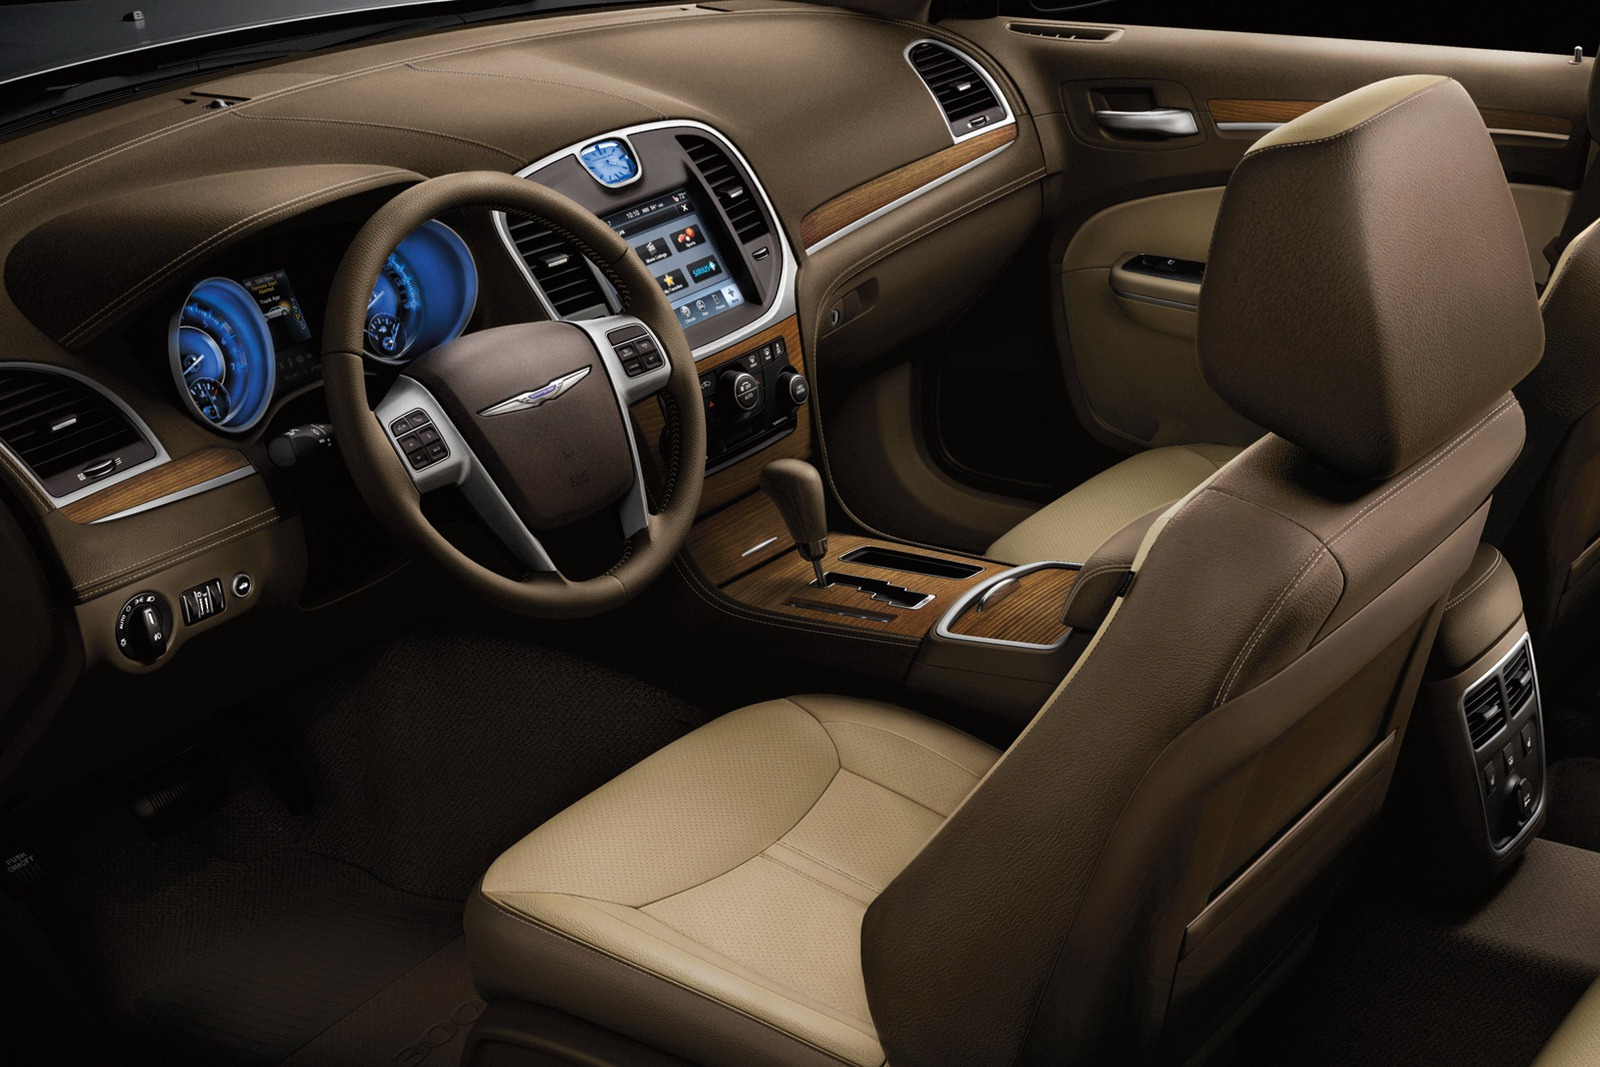 2012 Chrysler 300 Luxury Edition With V6 Unveiled